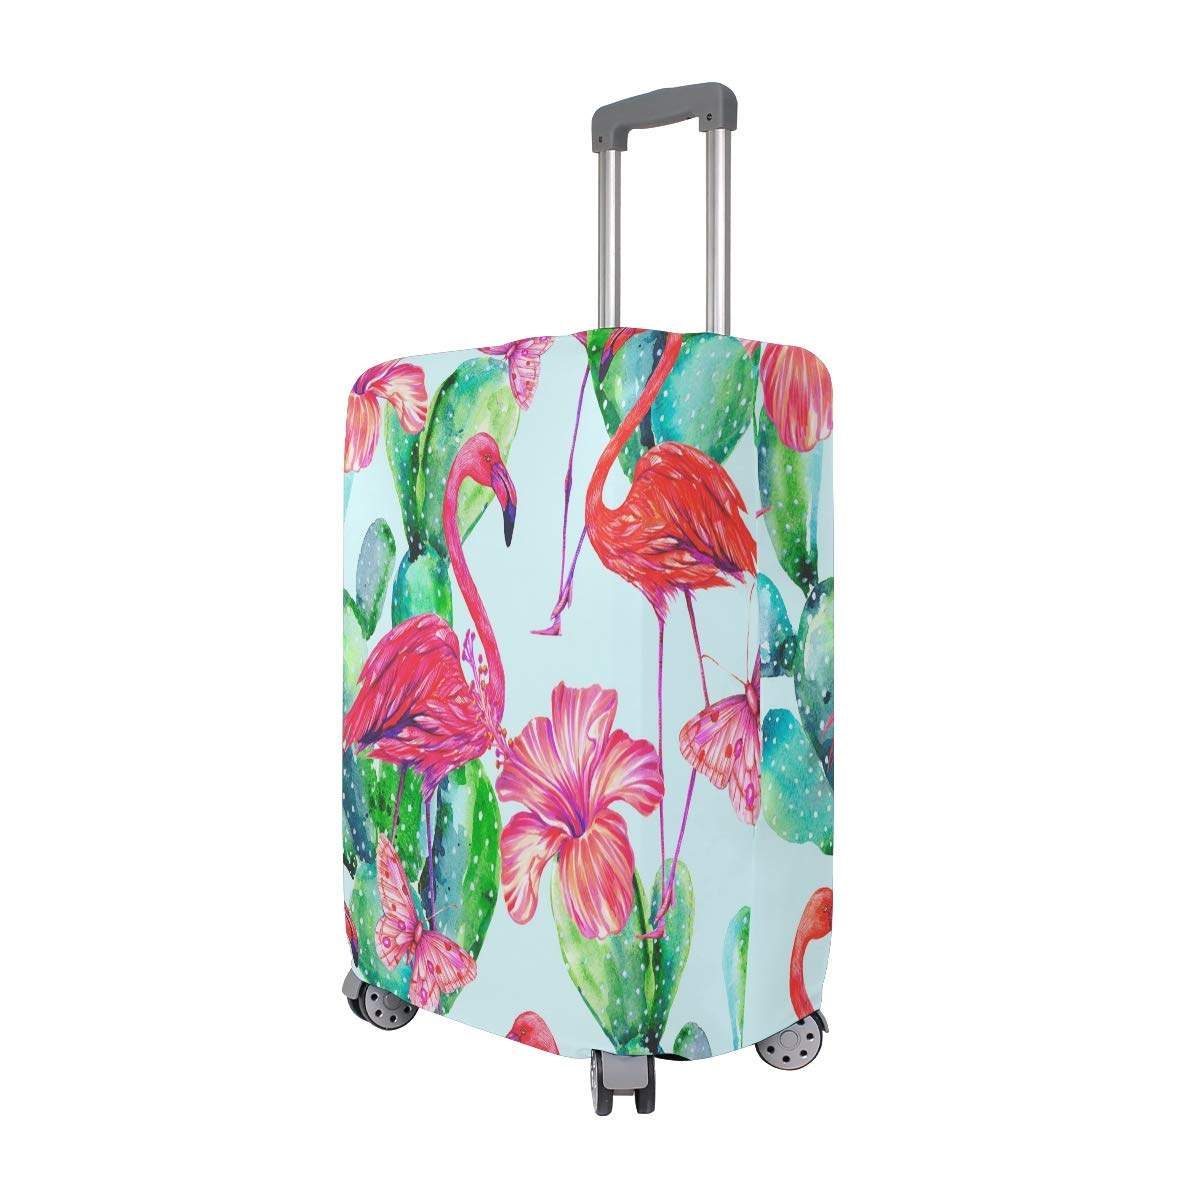 VIKKO Flamingo With Flowers And Cactus Travel Luggage Cover Suitcase Cover Protector Travel Case Bag Protector Elastic Luggage Case Cover Fits 29-32 Inch Luggage for Kids Men Women Travel